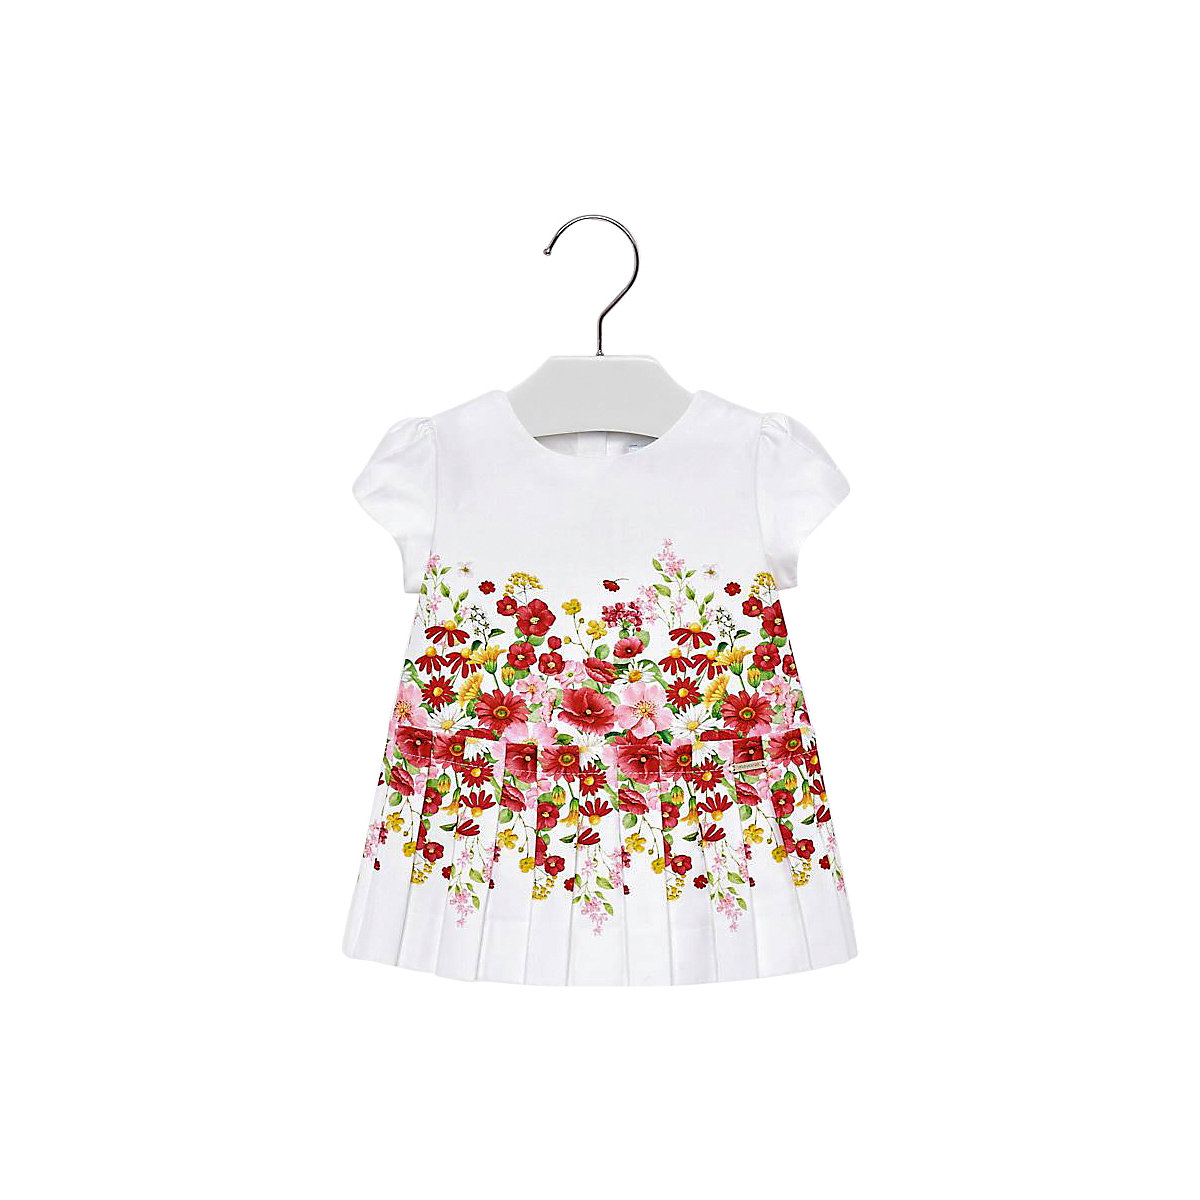 MAYORAL Dresses 10678522 Girl Children fitted pleated skirt White Cotton Casual Floral Knee-Length Short Sleeve white tube top and floral print pleated hem skirt co ord